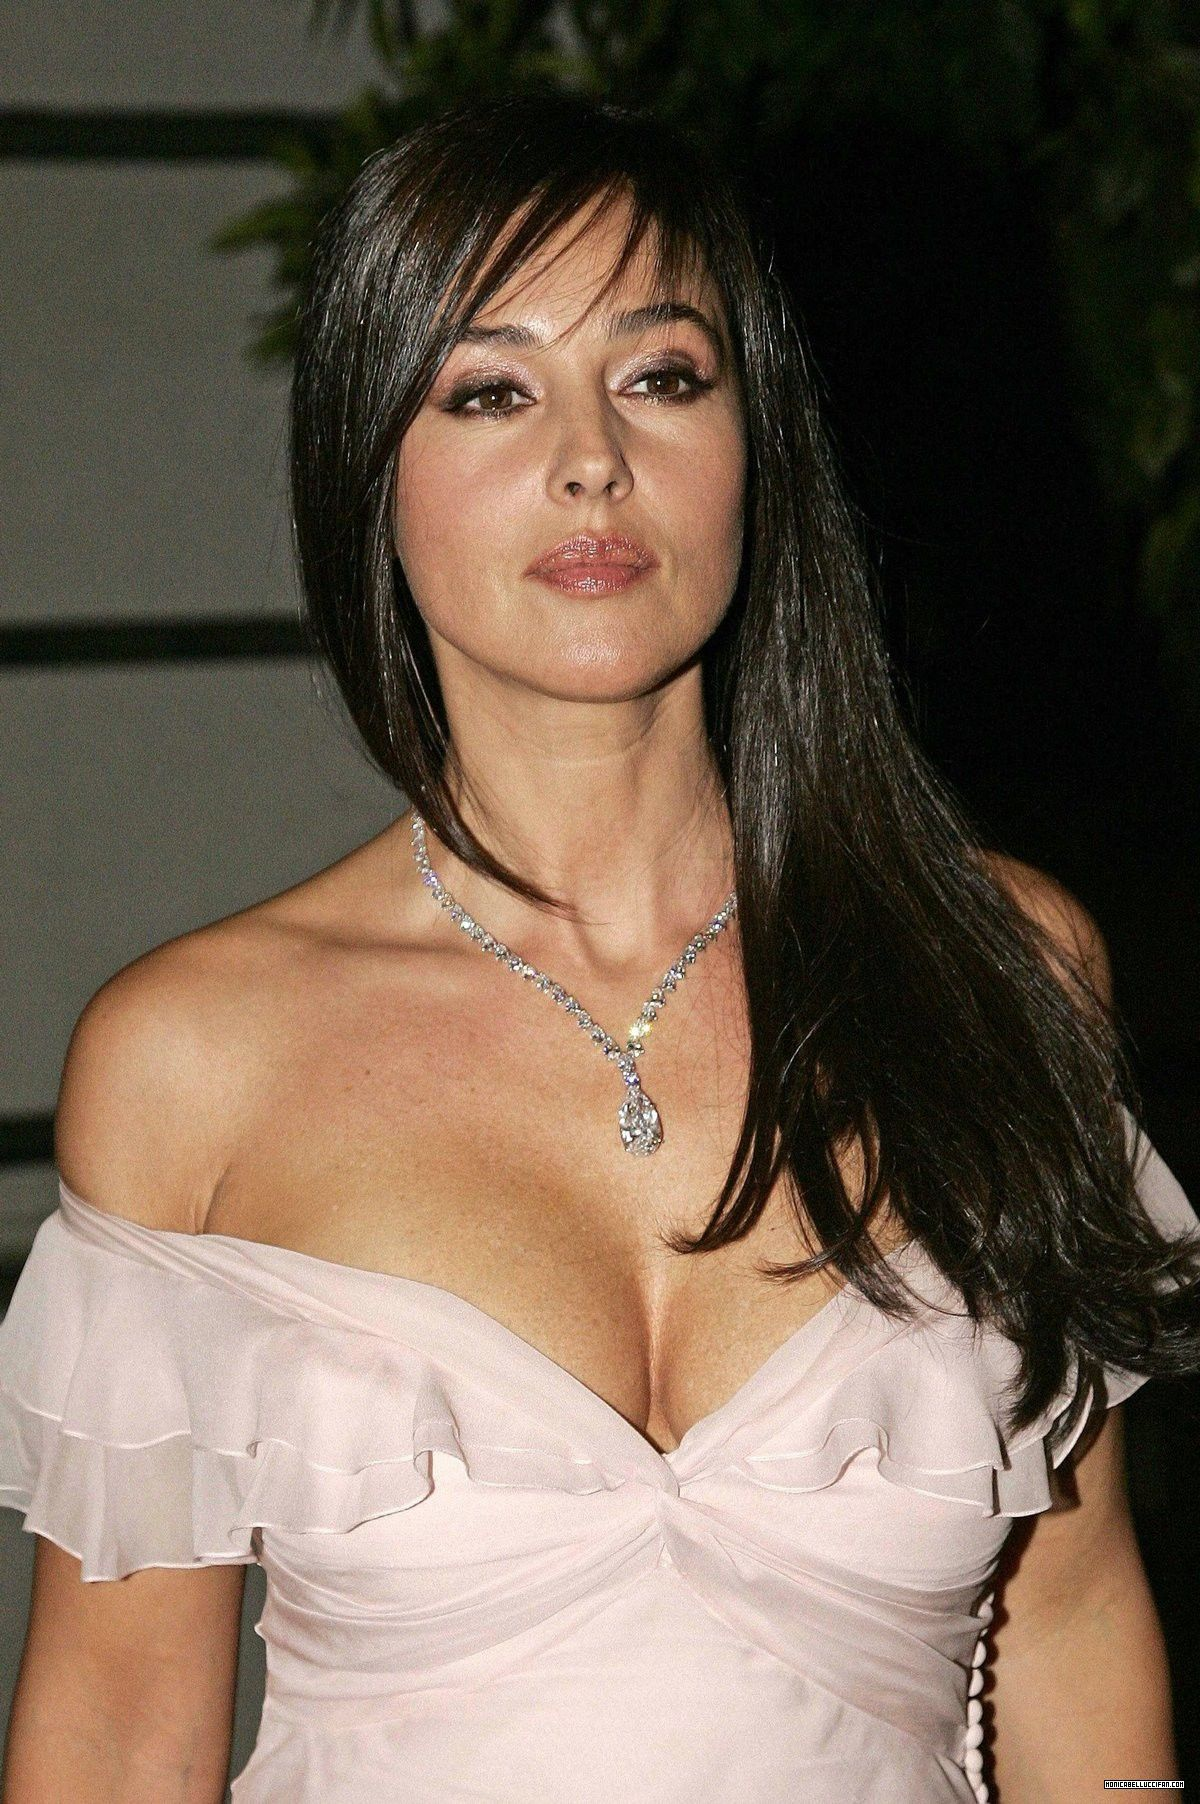 Monica Bellucci Italy Monica Bellucci Italy new images